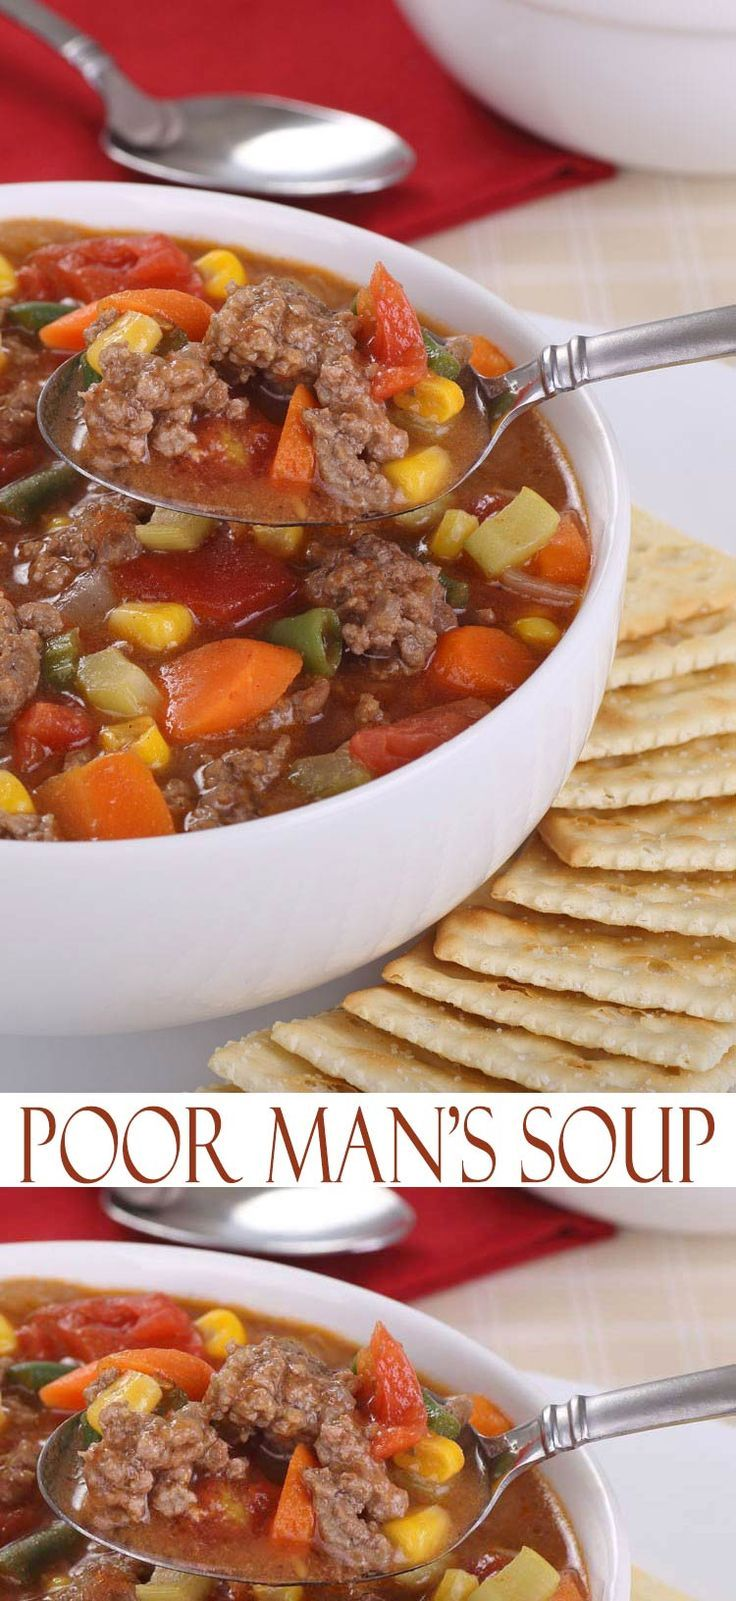 Poor Man's Soup Recipe. Poor Man's Soup recipe is a simple soup recipe with budget ingredients that is easy to make with ingredients that you probably already have at home. Feed a family on a budget with this easy soup recipe. Budget meal great!. Please also visit www.JustForYouPro... for colorful inspirational Prophetic Art and stories. Thank you so much! Blessings!